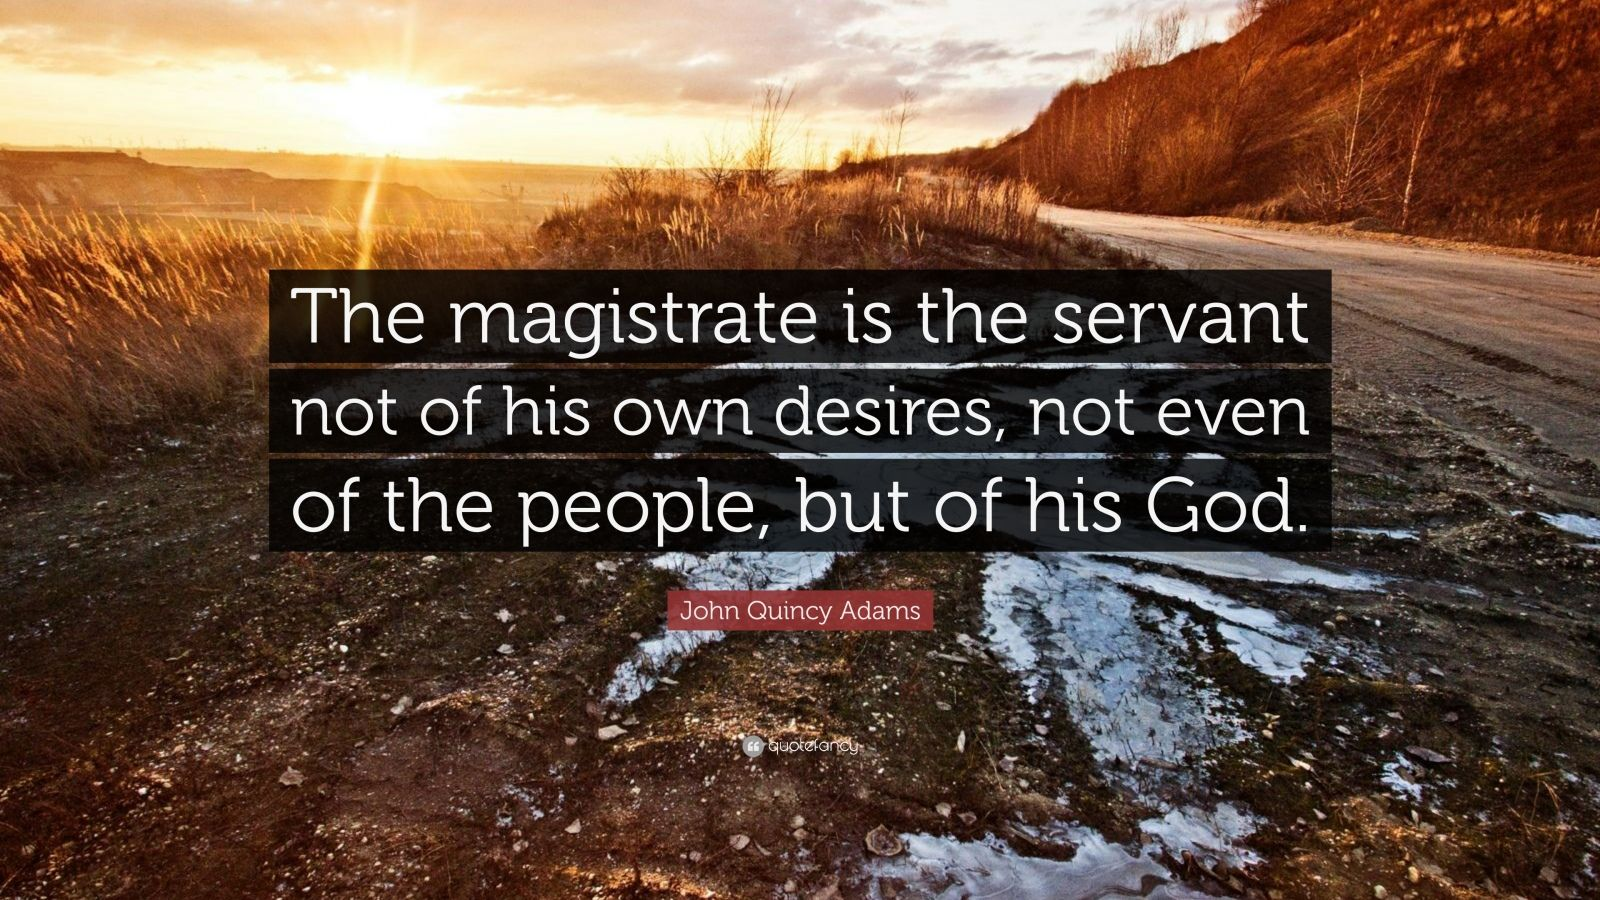 """John Quincy Adams Quote: """"The magistrate is the servant not of his own desires, not even of the people, but of his God."""""""